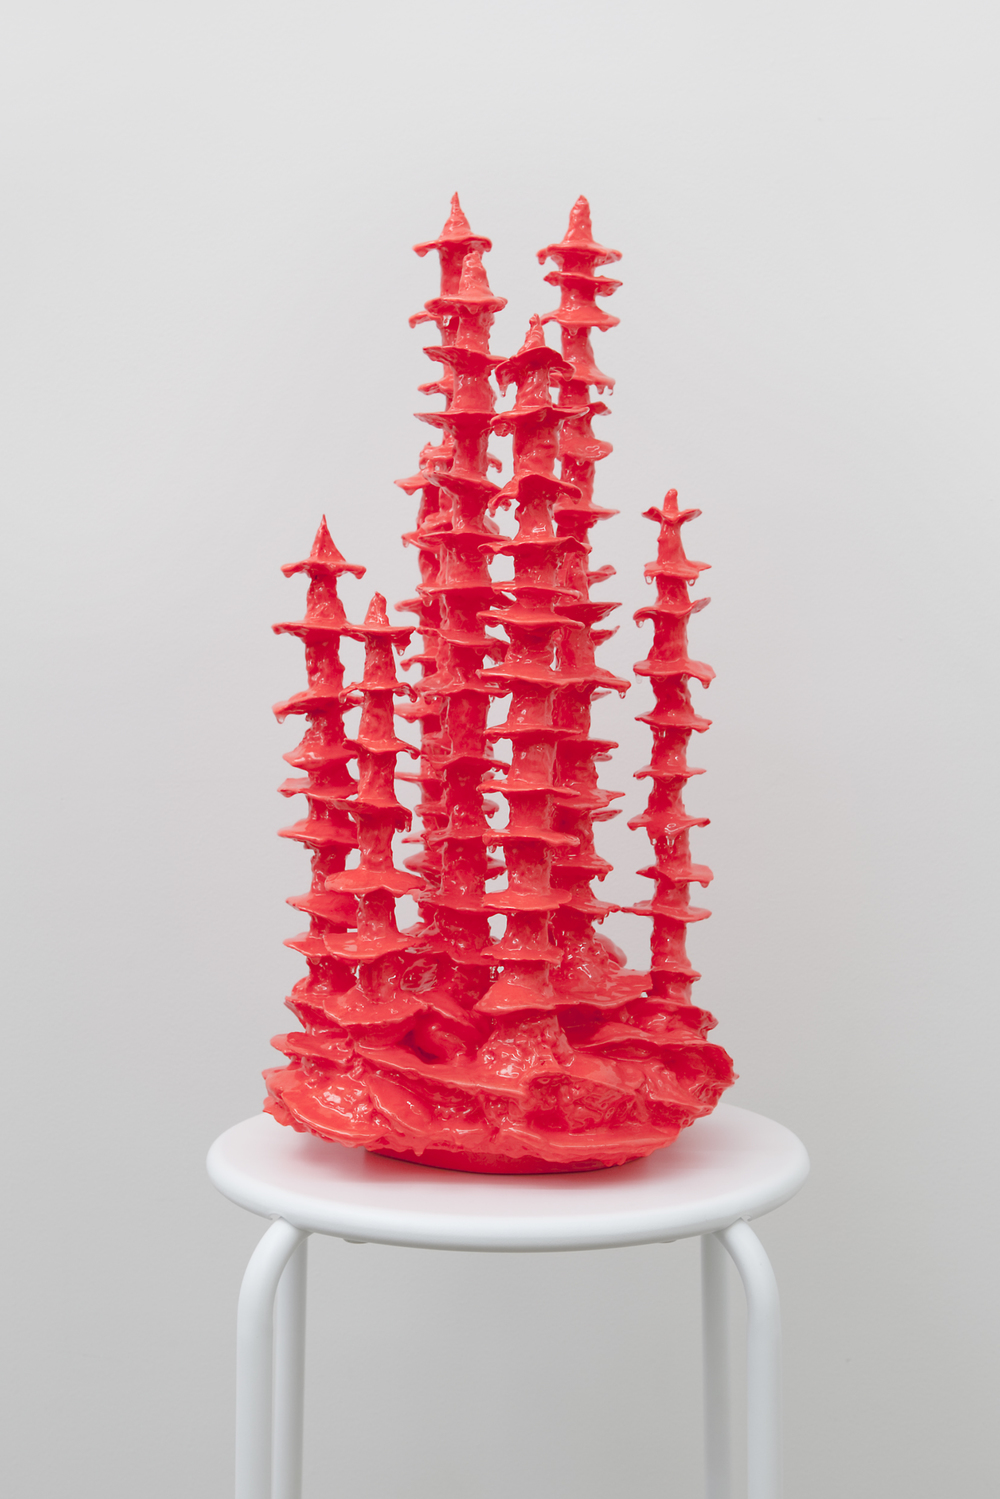 TRACY SARROFF   Glow-in-the-dark Stalagmite, red II  2013 Wood, expanding foam, phosphorescent paint, epoxy resin 56 x 30 cm